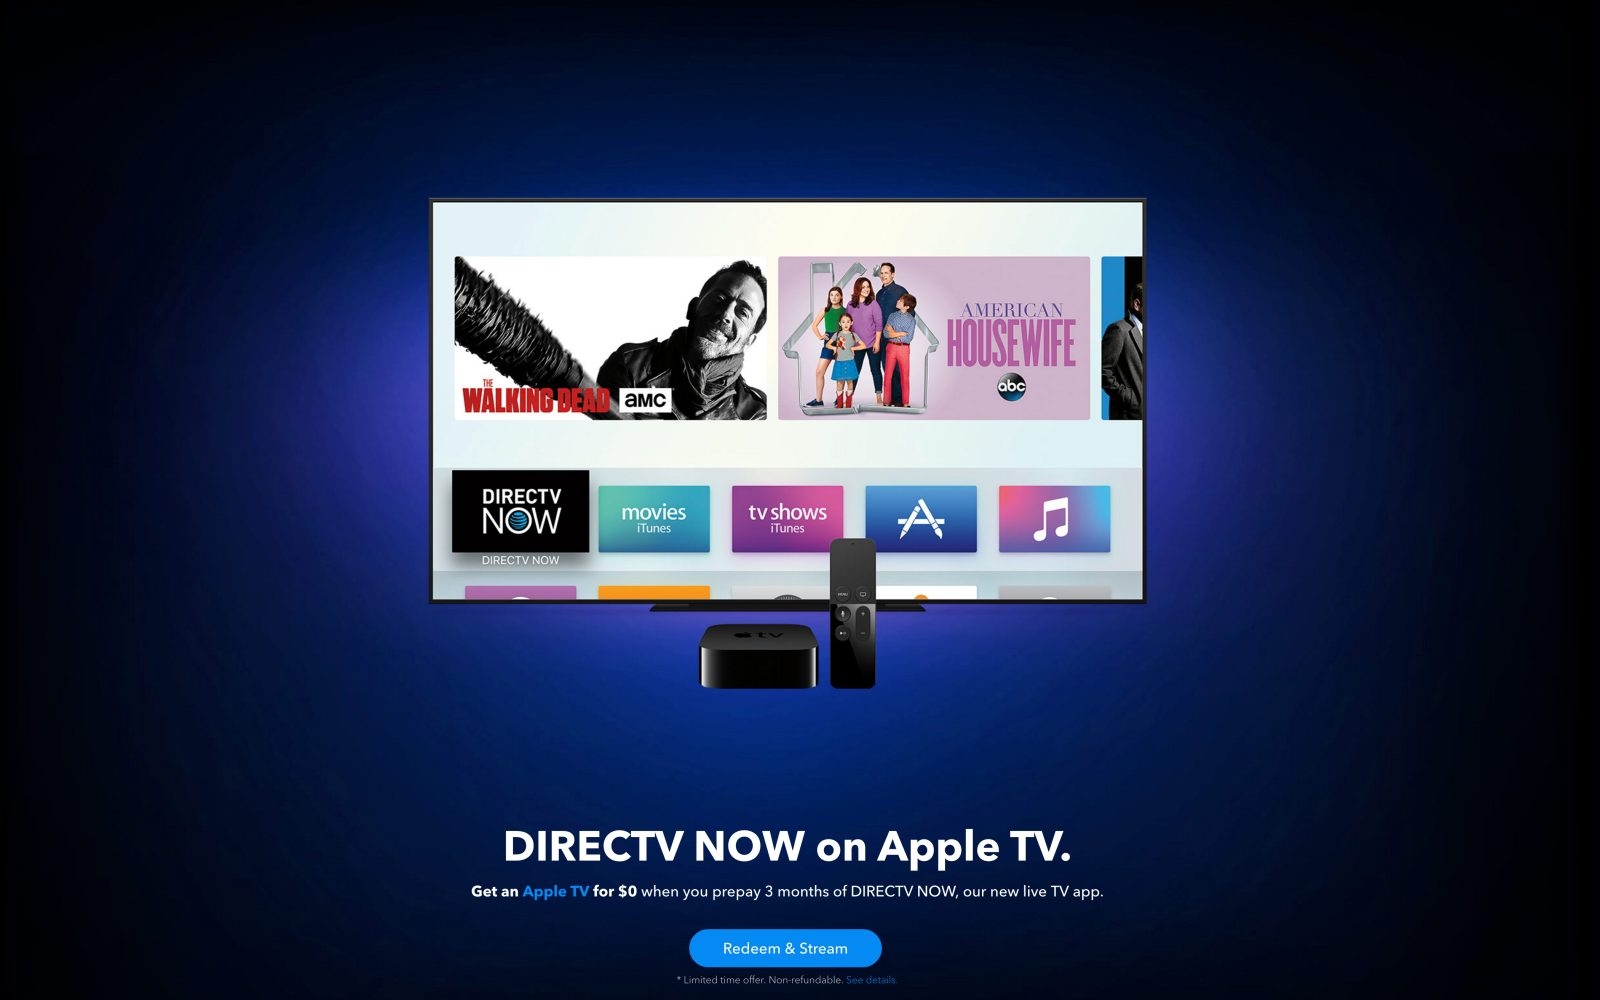 DirecTV Now launches with an aggressive free Apple TV offer when you